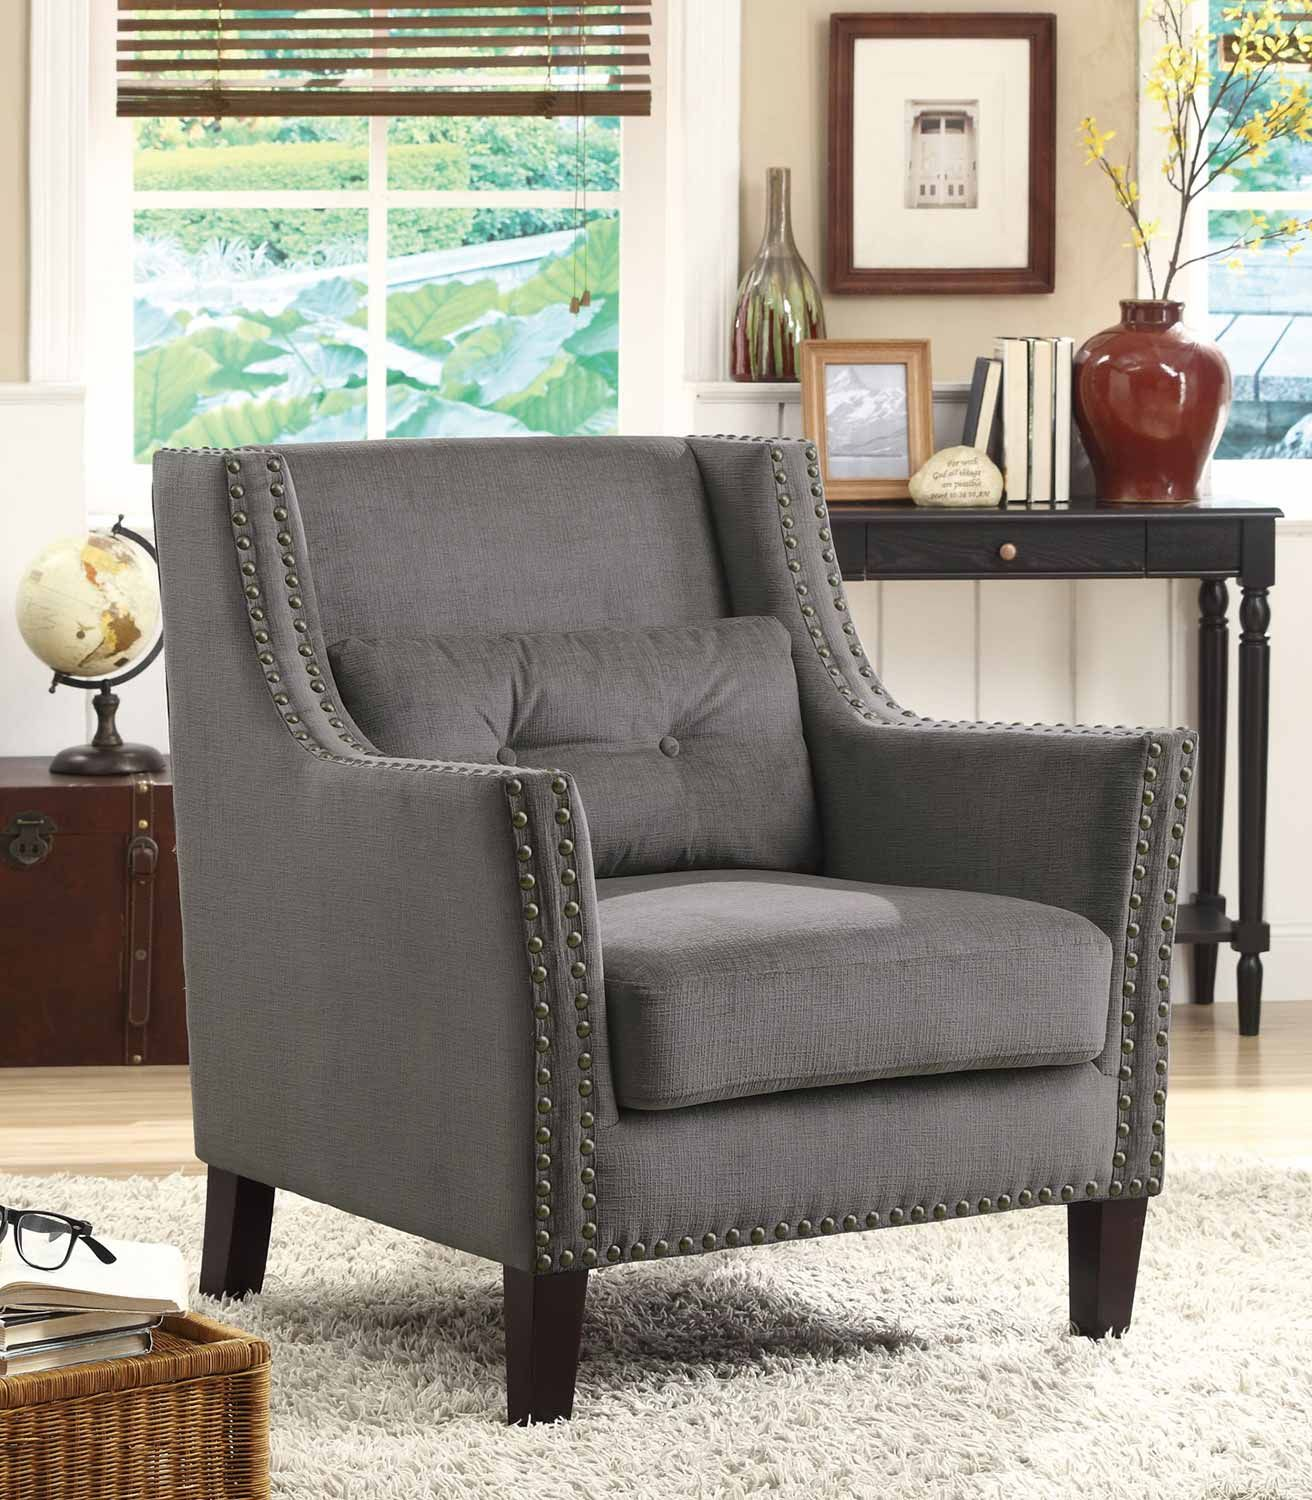 Coaster Everyday Transitional Multi Color Accent Chair: Coaster 902170 Accent Chair - Grey